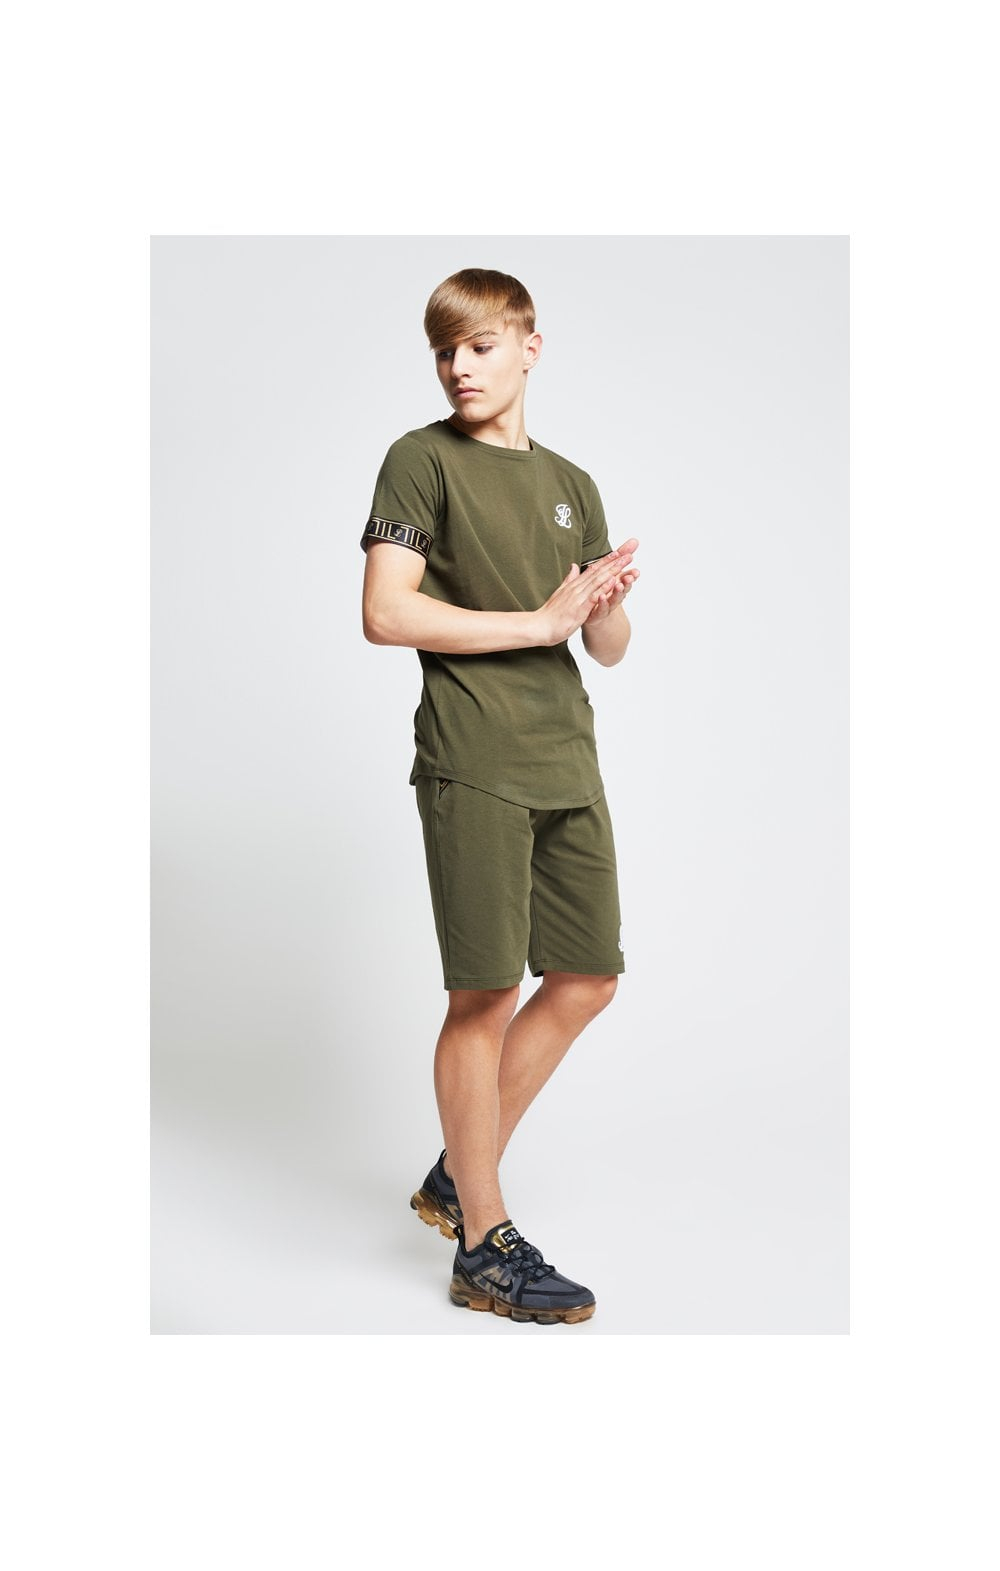 Illusive London Shorts Jersey mit Zierband - Khaki (4)